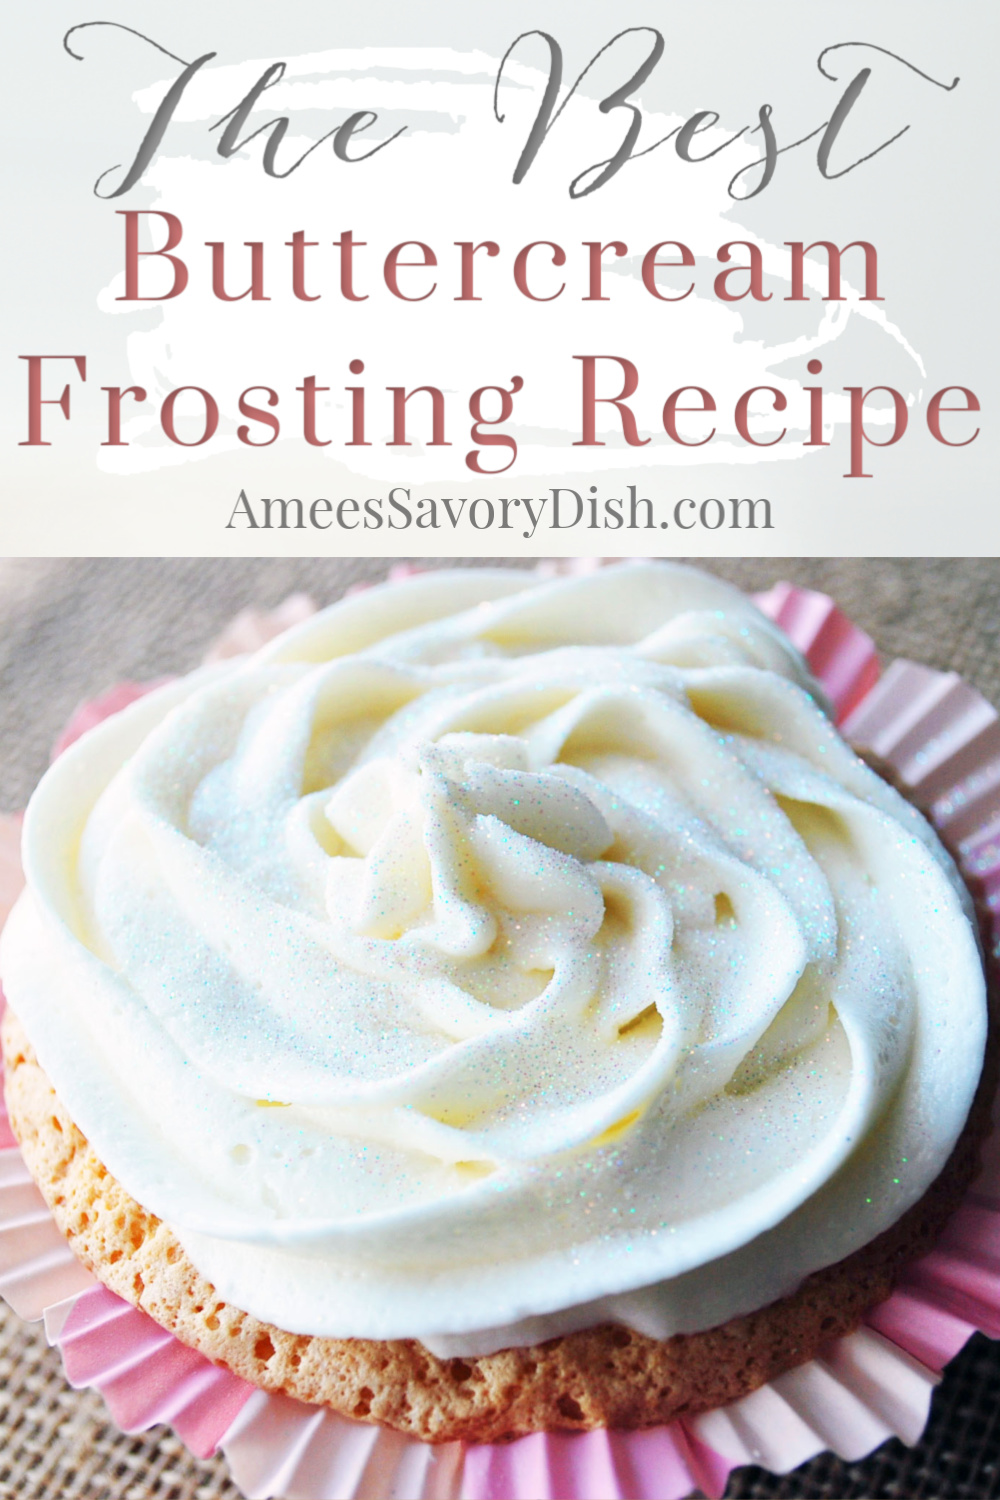 This easy frosting recipe is made with butter, milk, powdered sugar, meringue powder, and vanilla and almond extract.  So good on all your favorite cake and cupcake recipes! Also, learn how to make adorable and easy Fairy and Pirate themed cupcakes! via @Ameessavorydish